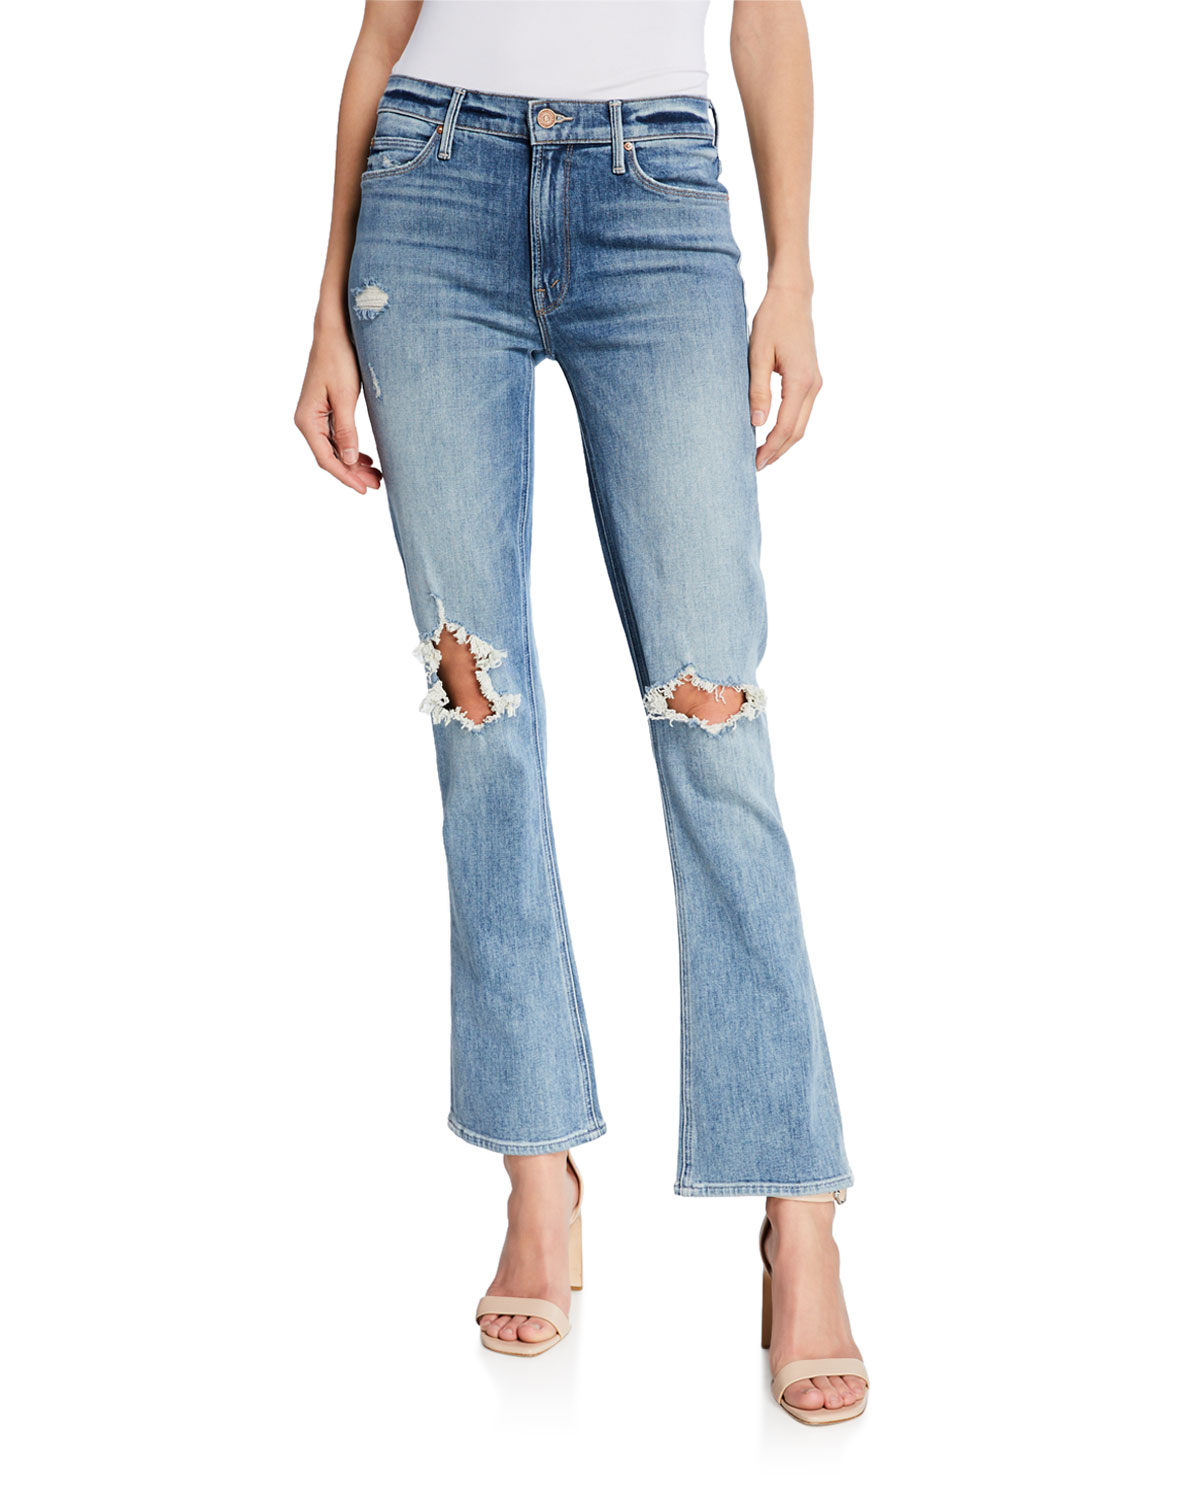 Mother Jeans THE RUNAWAY WEEKENDER BOOT-CUT JEANS